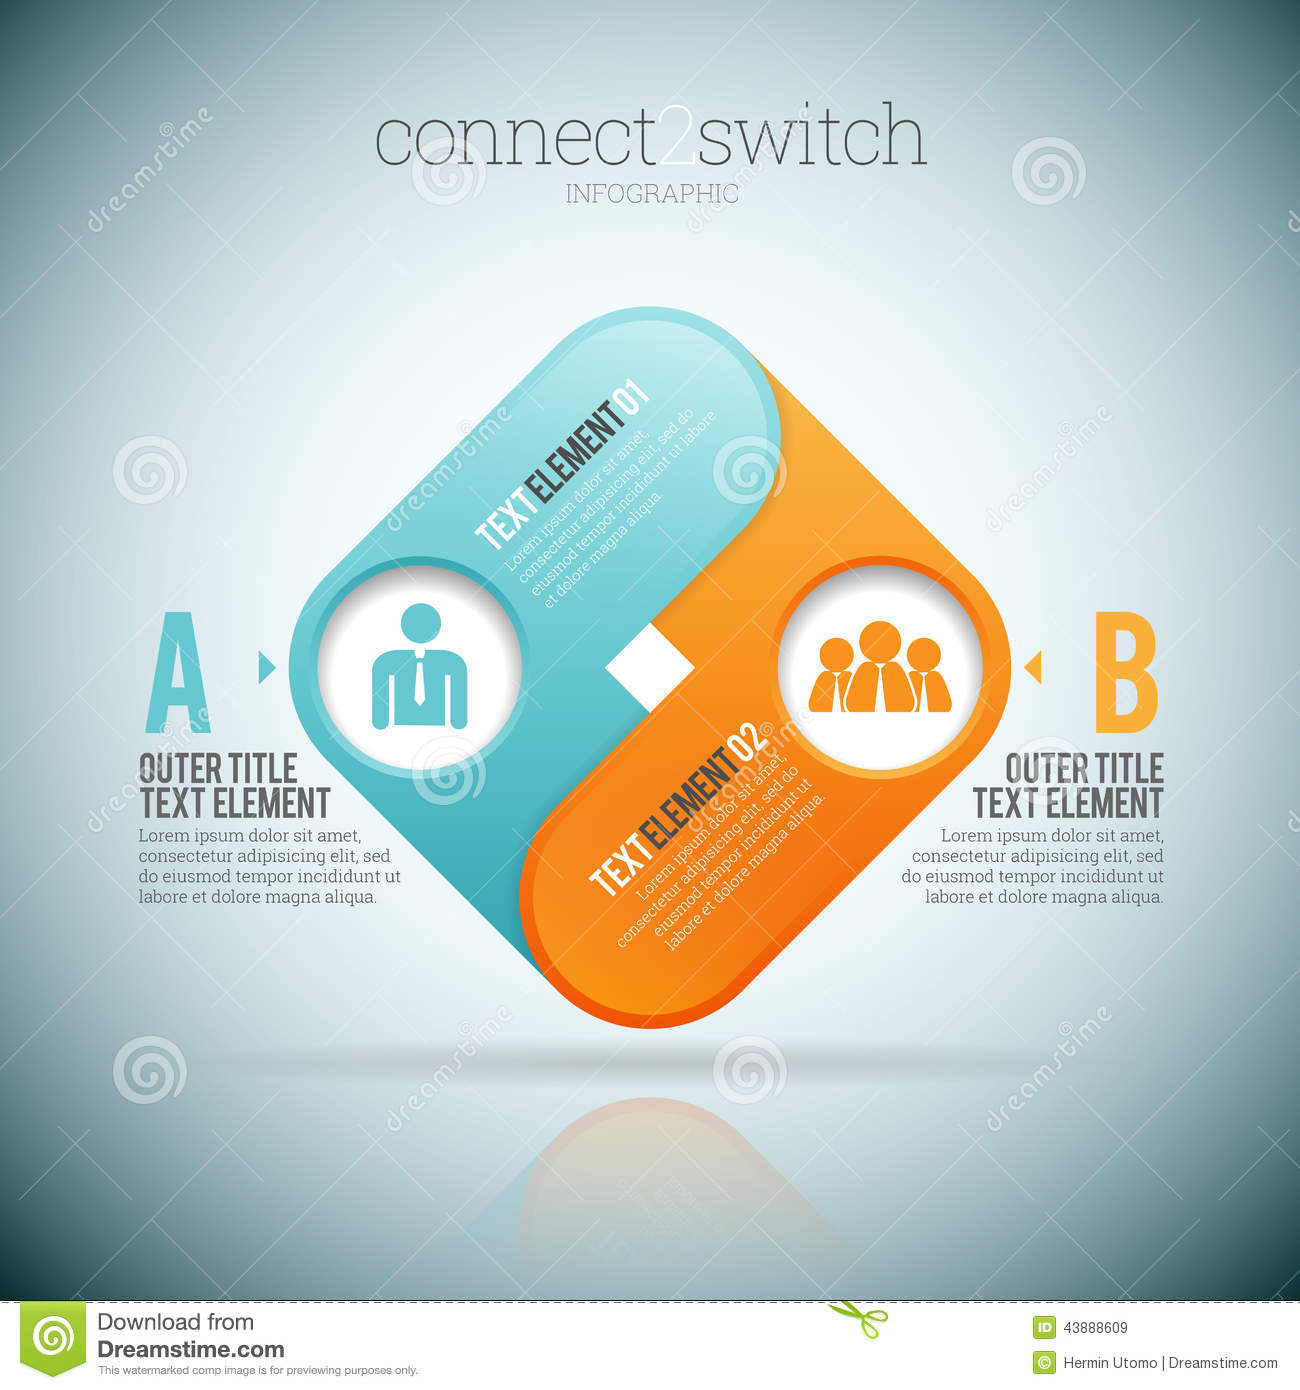 Connect 2 Switch stock vector. Illustration of chain - 43888609